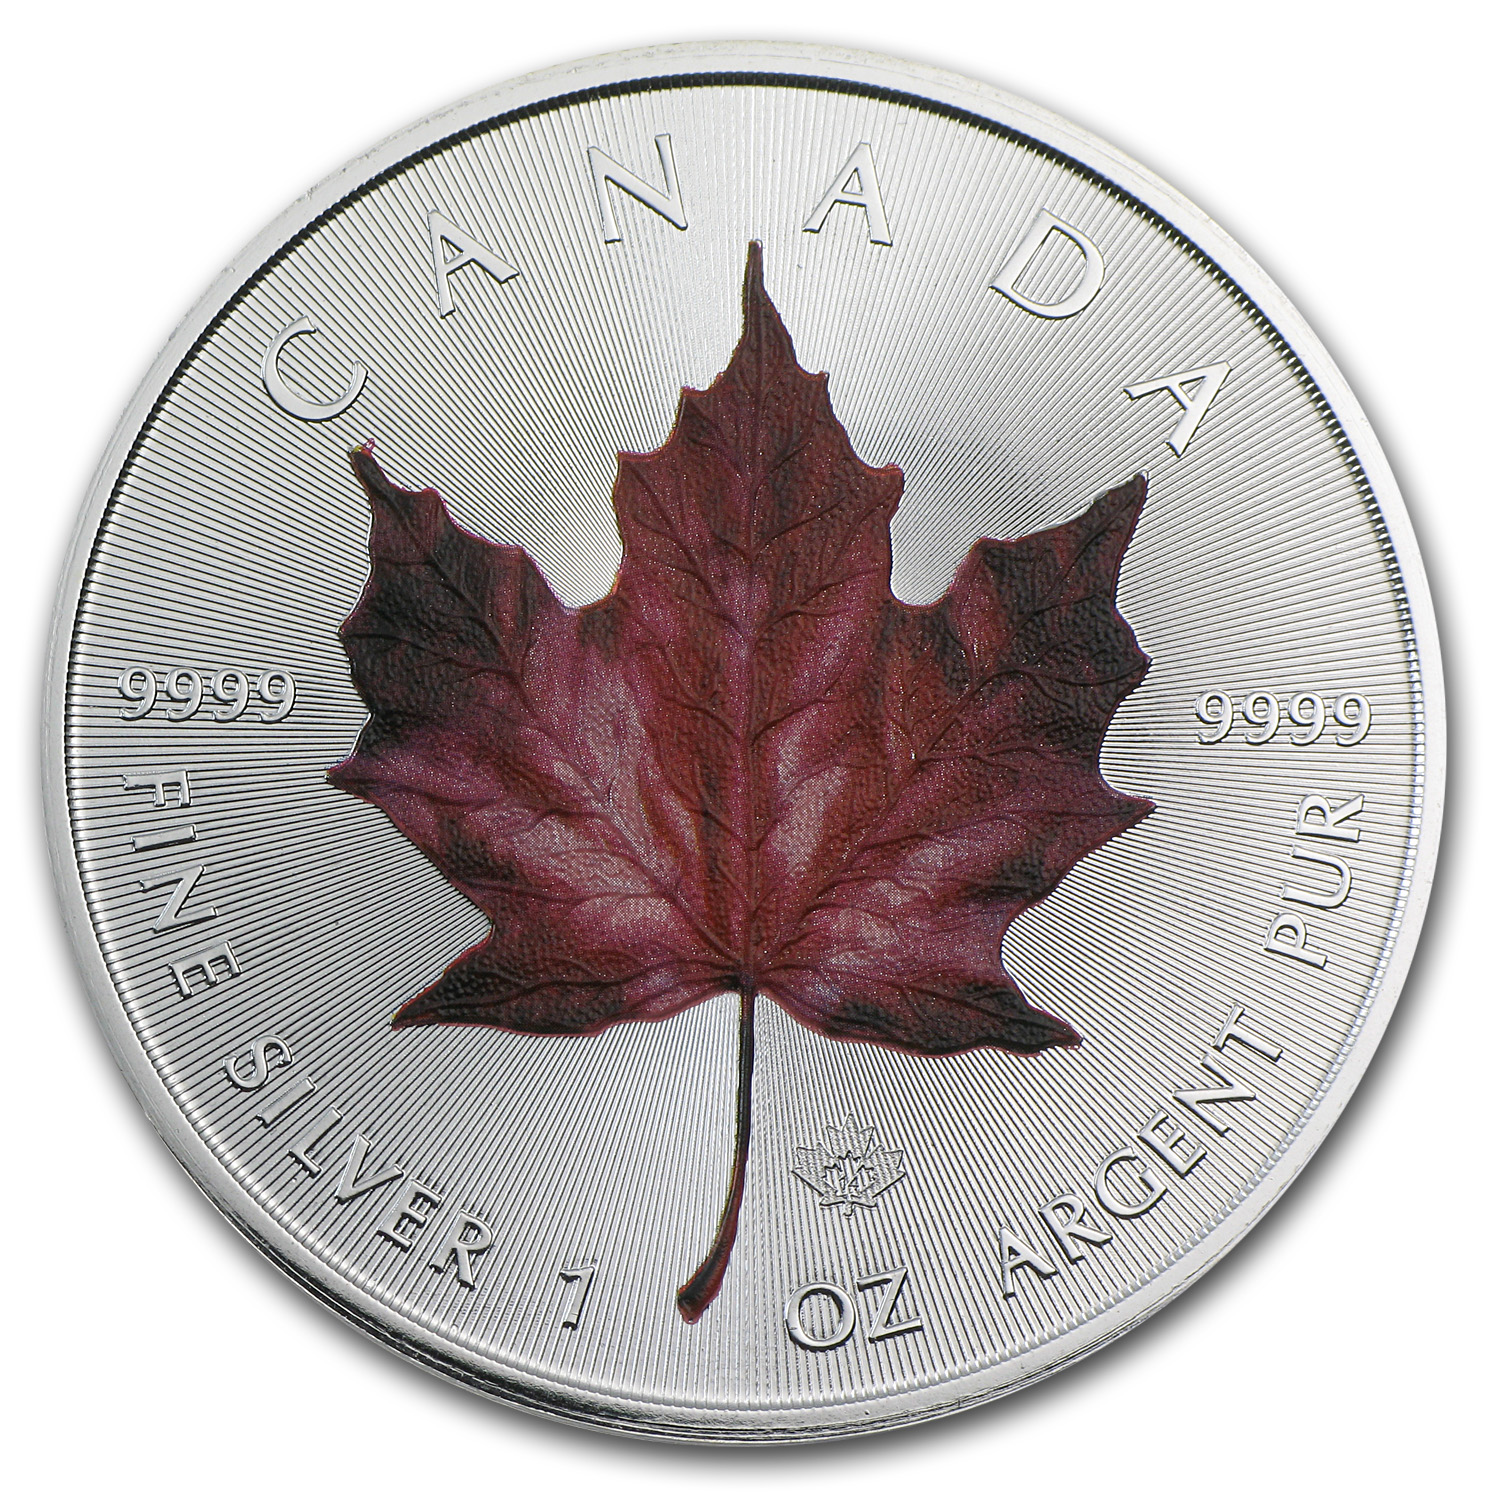 2014 Canada 1 oz Silver Maple Leaf Red Maple Leaf